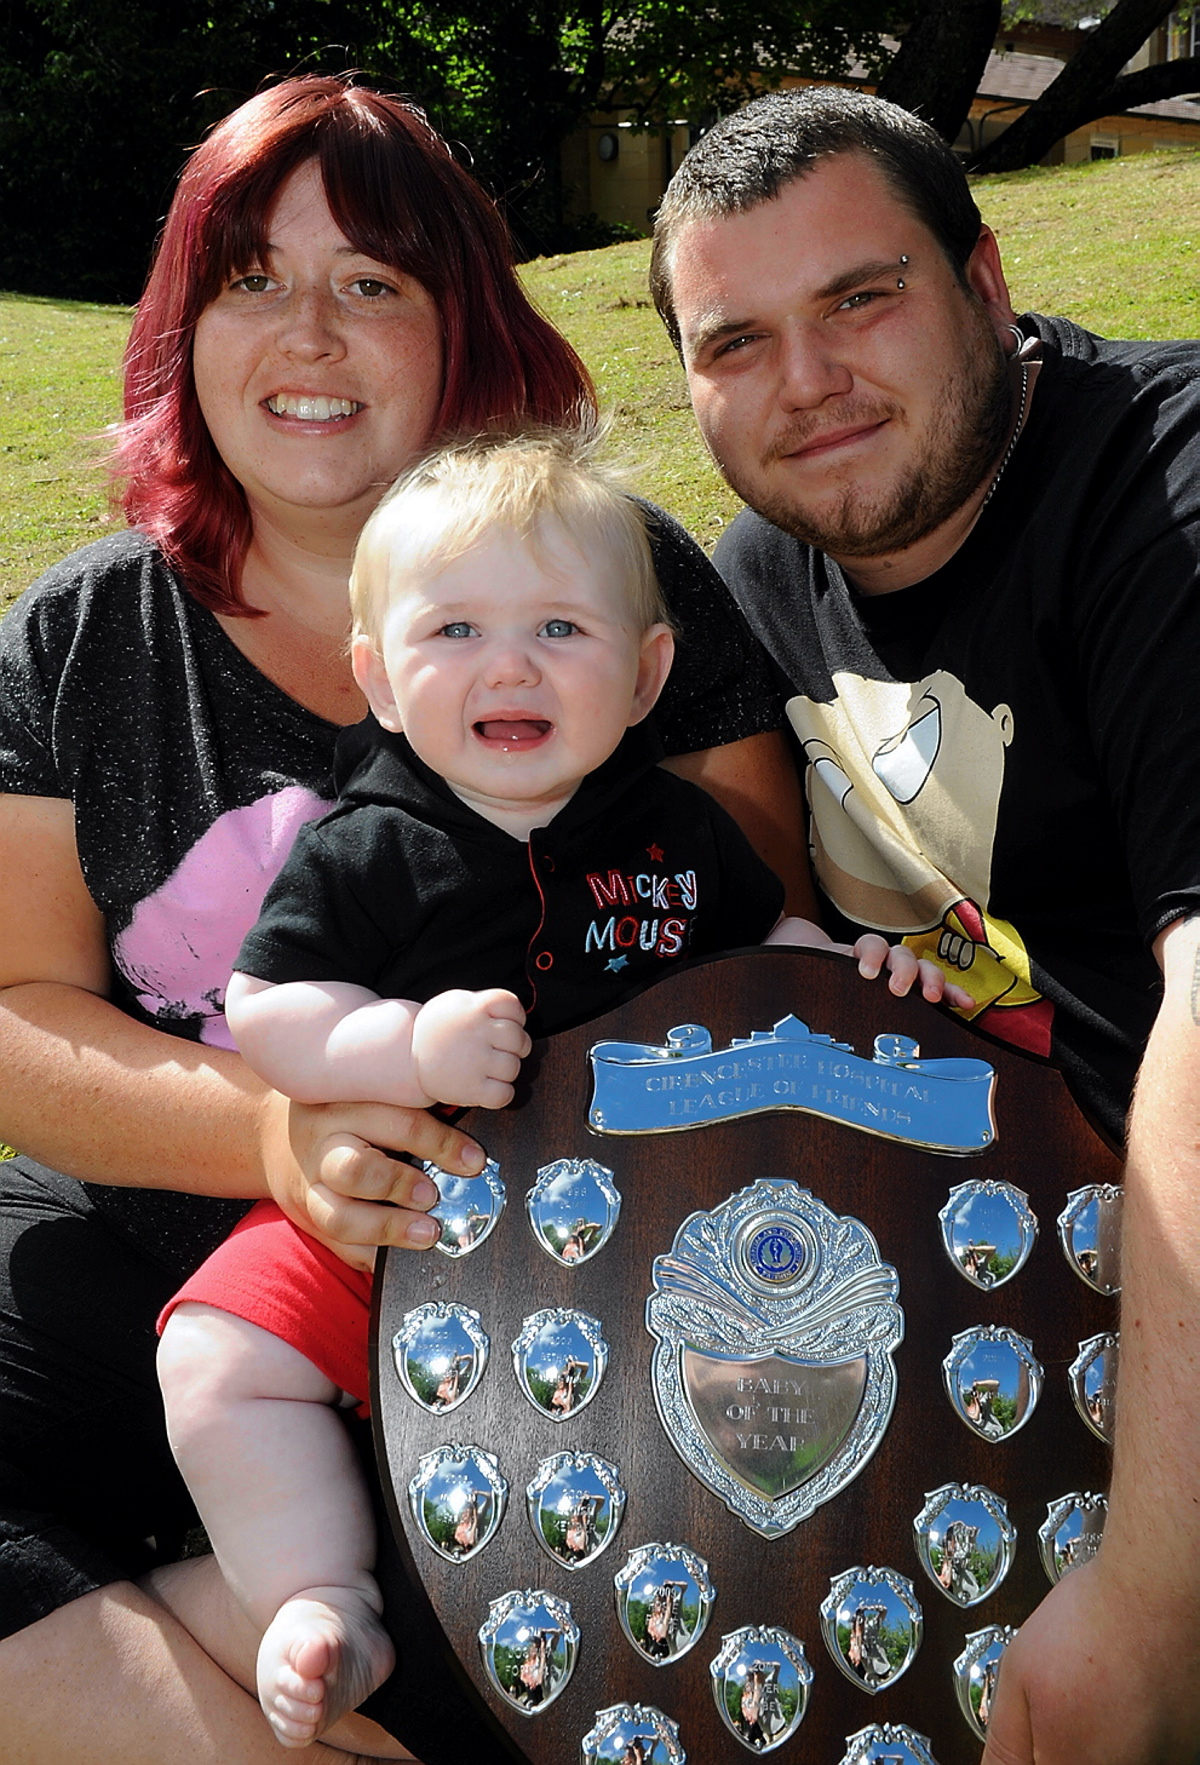 Oakley Norris, overall winner of the Cirencester hospital baby show pictured with proud parents Nichola Adams and Tom Norris